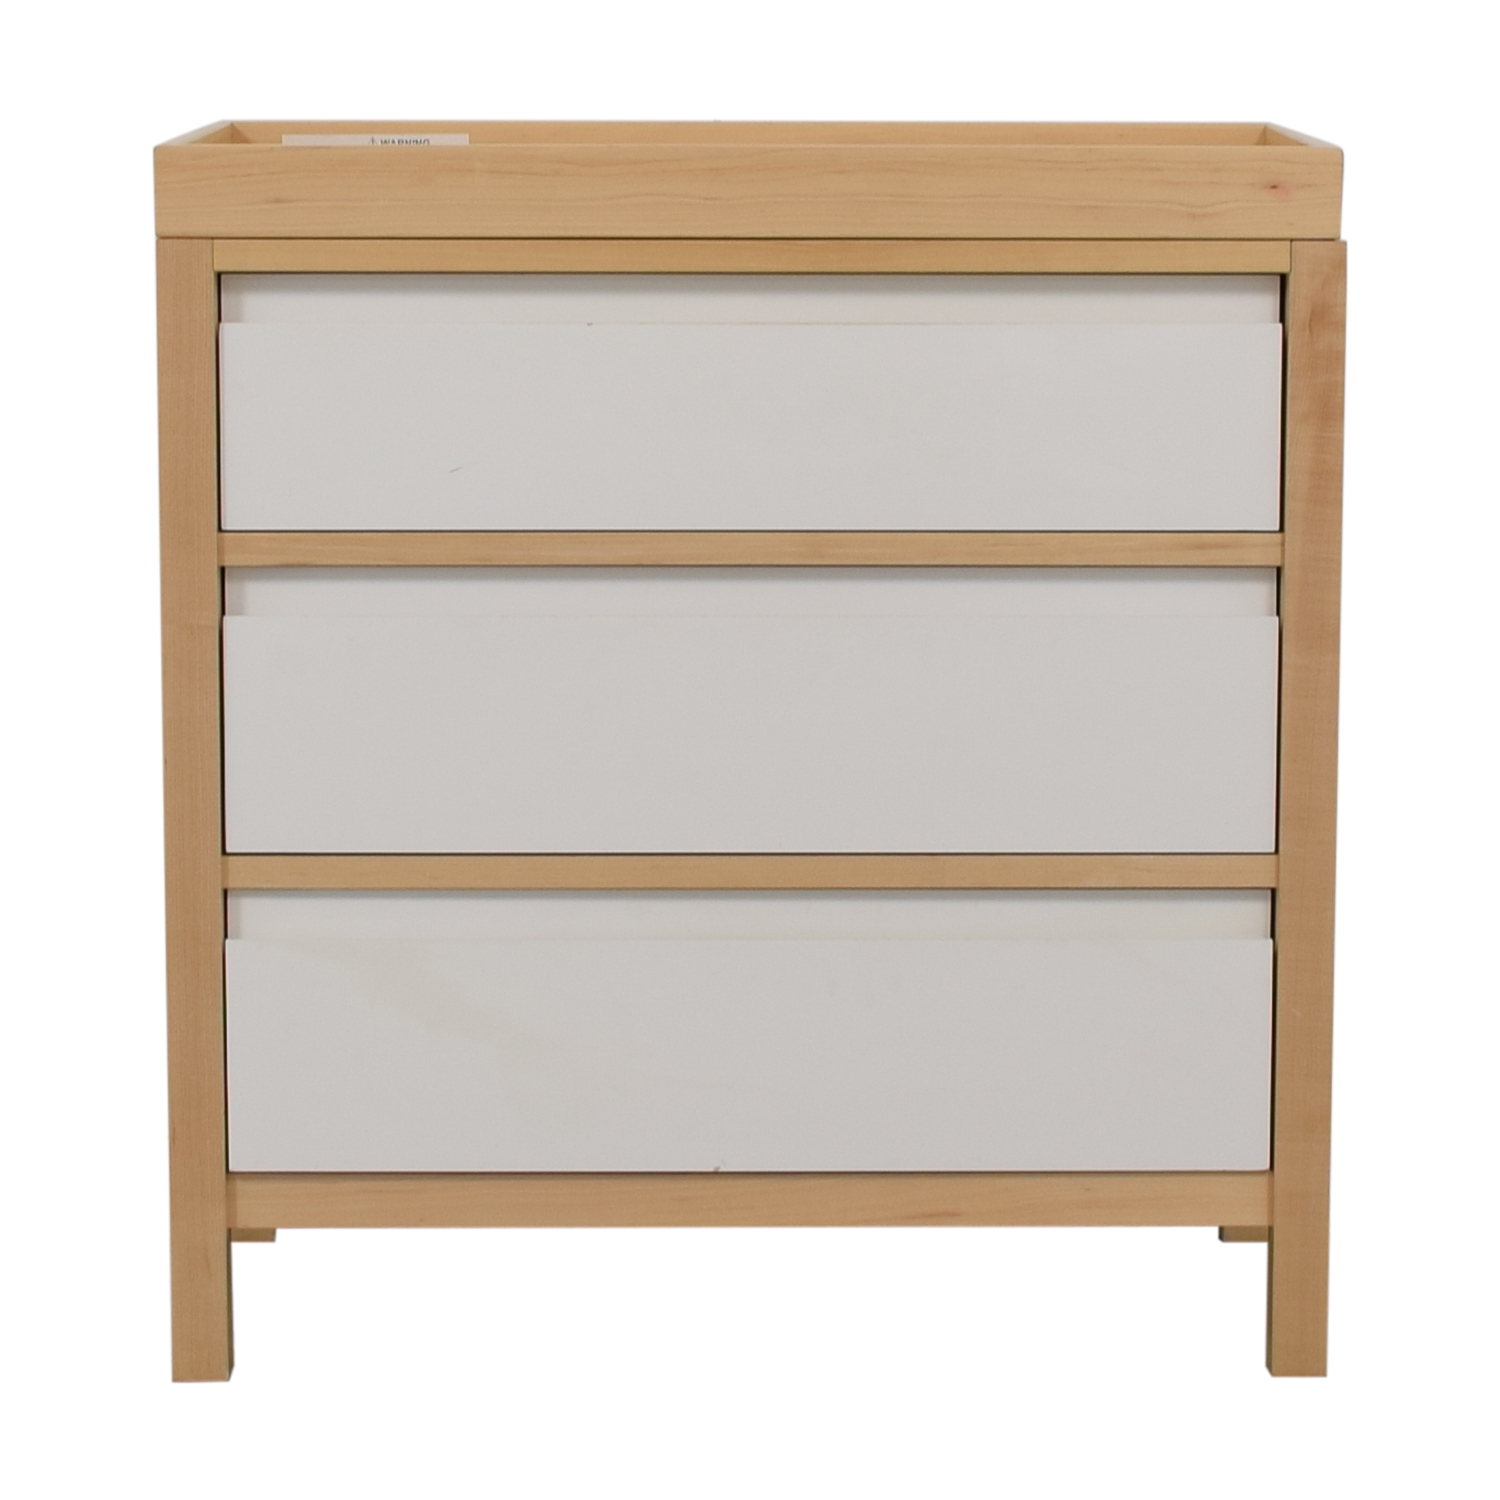 81 Off Land Of Nod Land Of Nod Dresser With Changing